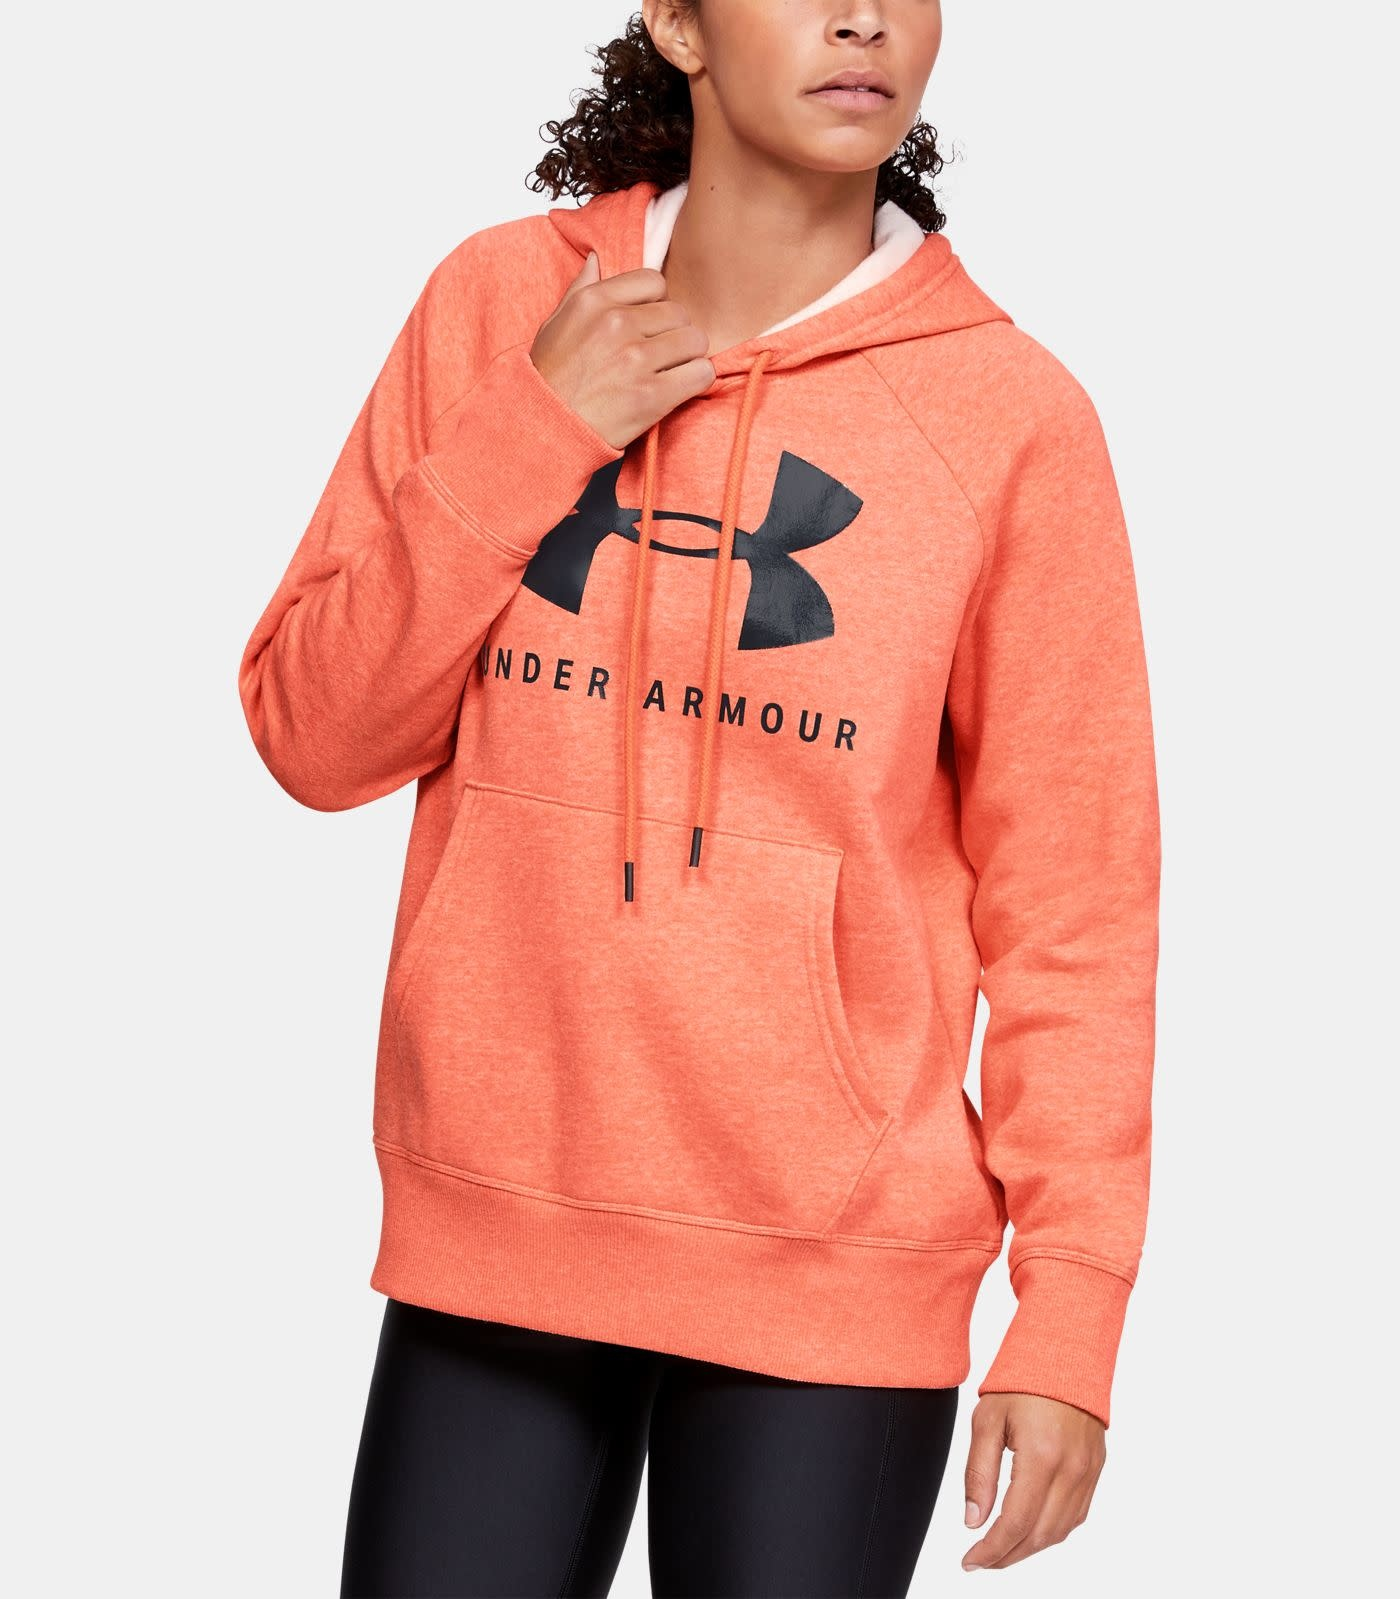 Under Armour UNDER ARMOUR WOMENS RIVAL FLEECE SPORTSTYLE GRAPHIC LOGO HOODIE